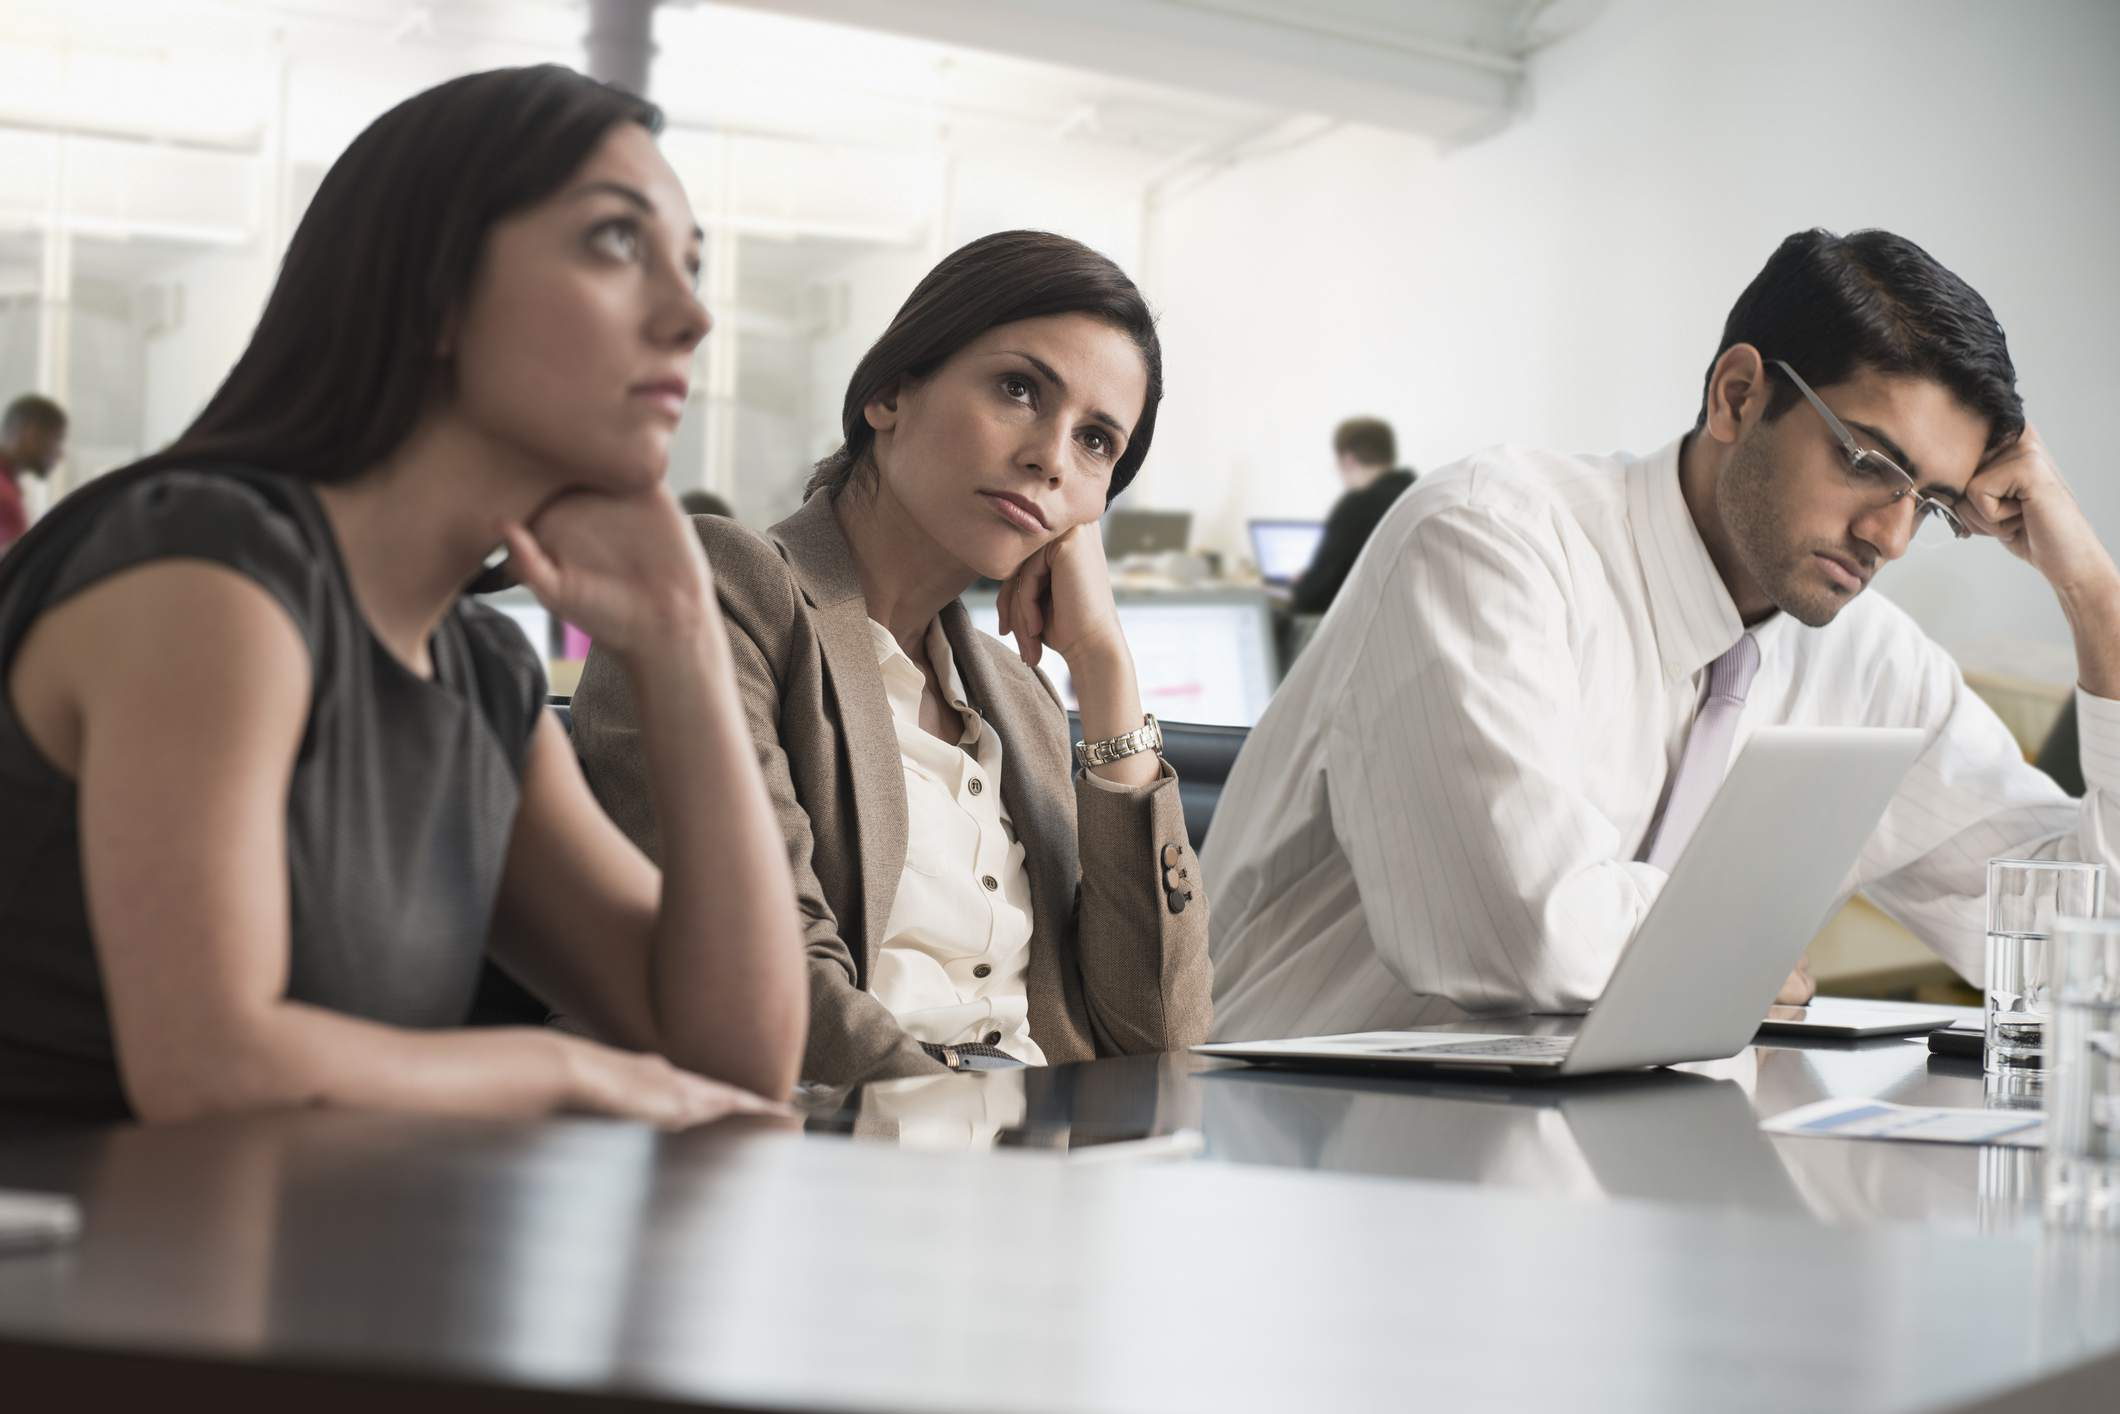 Group of people bored, sitting at a work table